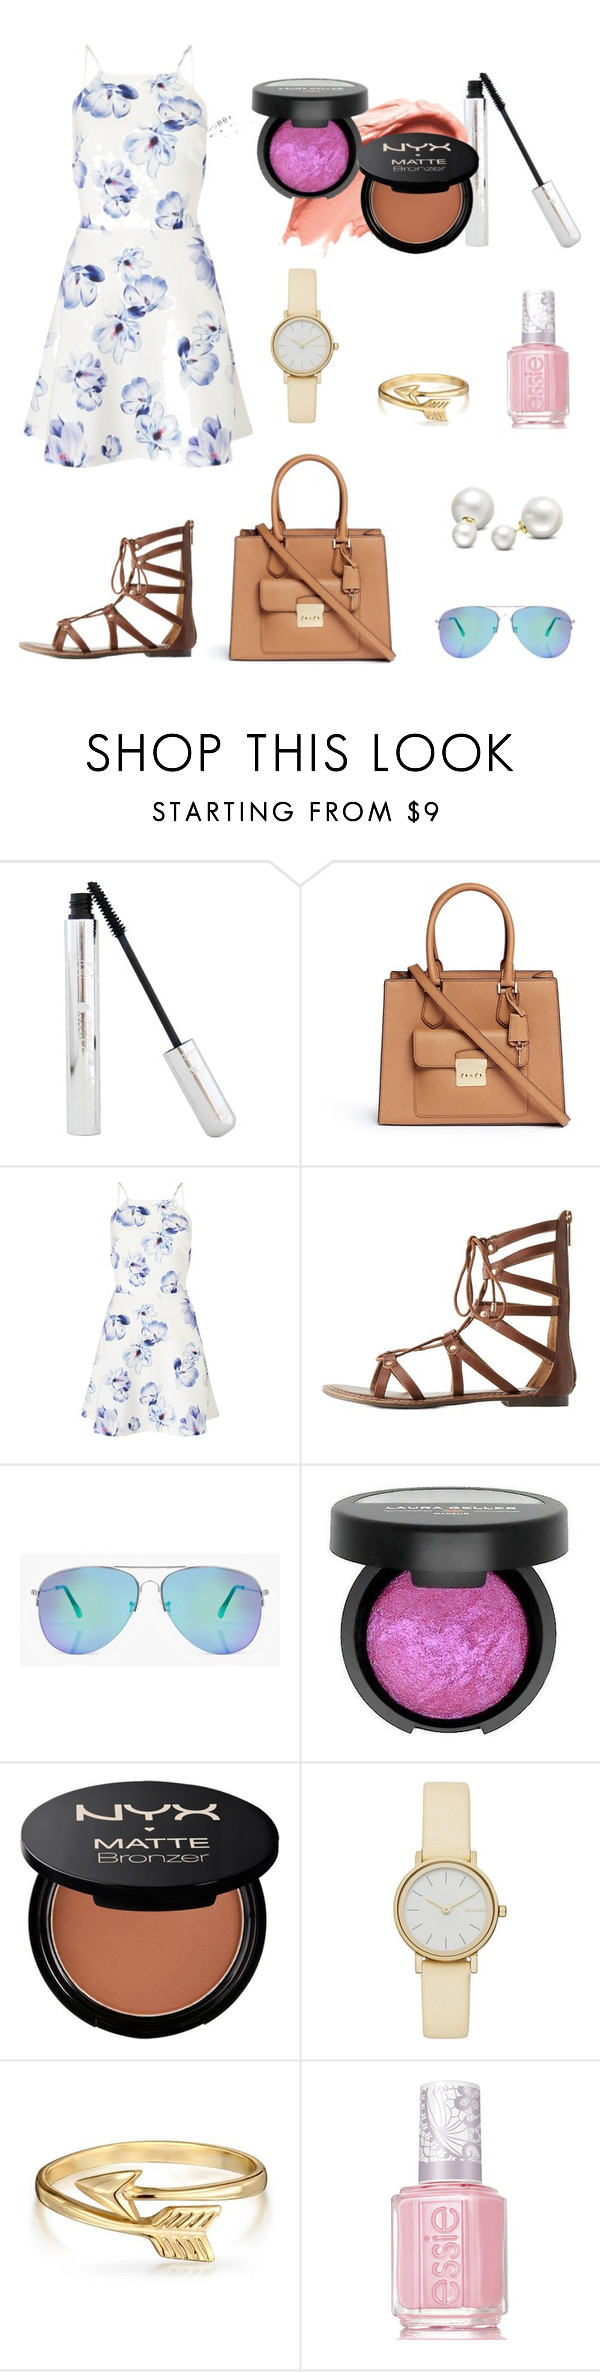 """""""Summer date"""" by bombiforever21 ❤ liked on Polyvore featuring Michael Kors, Lipsy, Charlotte Russe, Boohoo, Urban Decay, Laura Geller, NYX, Skagen, Bling Jewelry and Essie"""